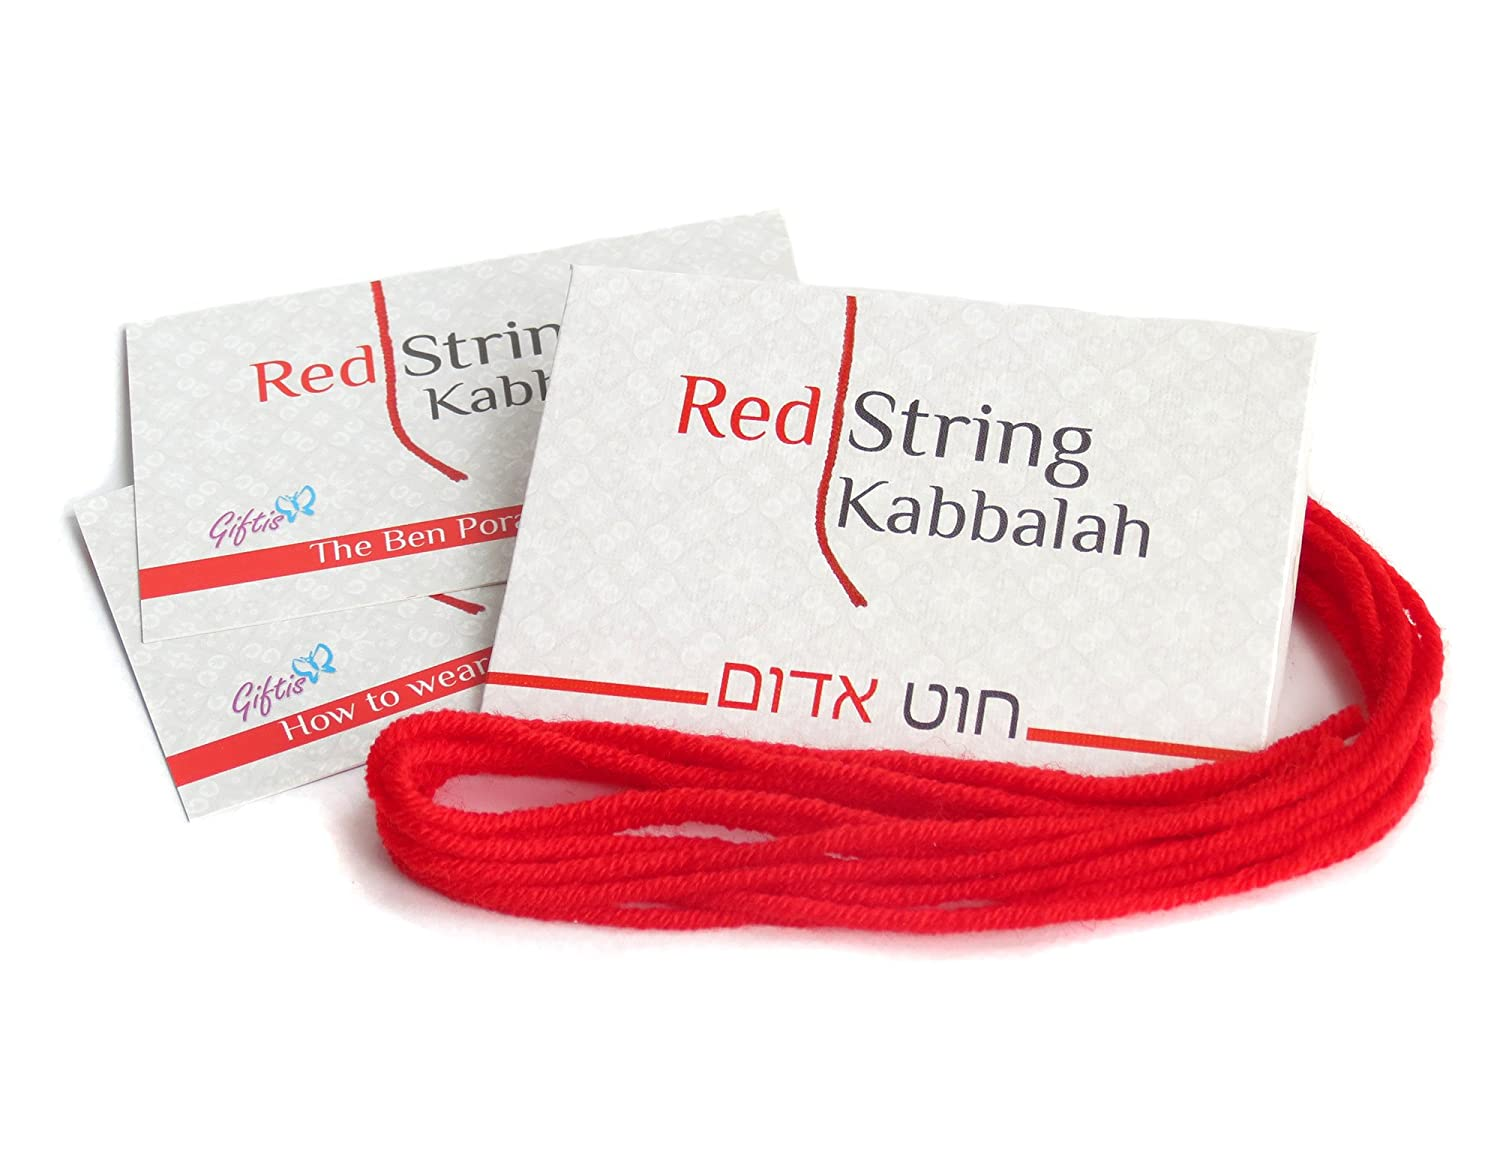 5 pcs Original Kabbalah Red String Bracelet - 100% Wool - Powerful Protection for You and Your Family Against the Evil Eye from Rachel's Tomb in Israel Giftis RS5